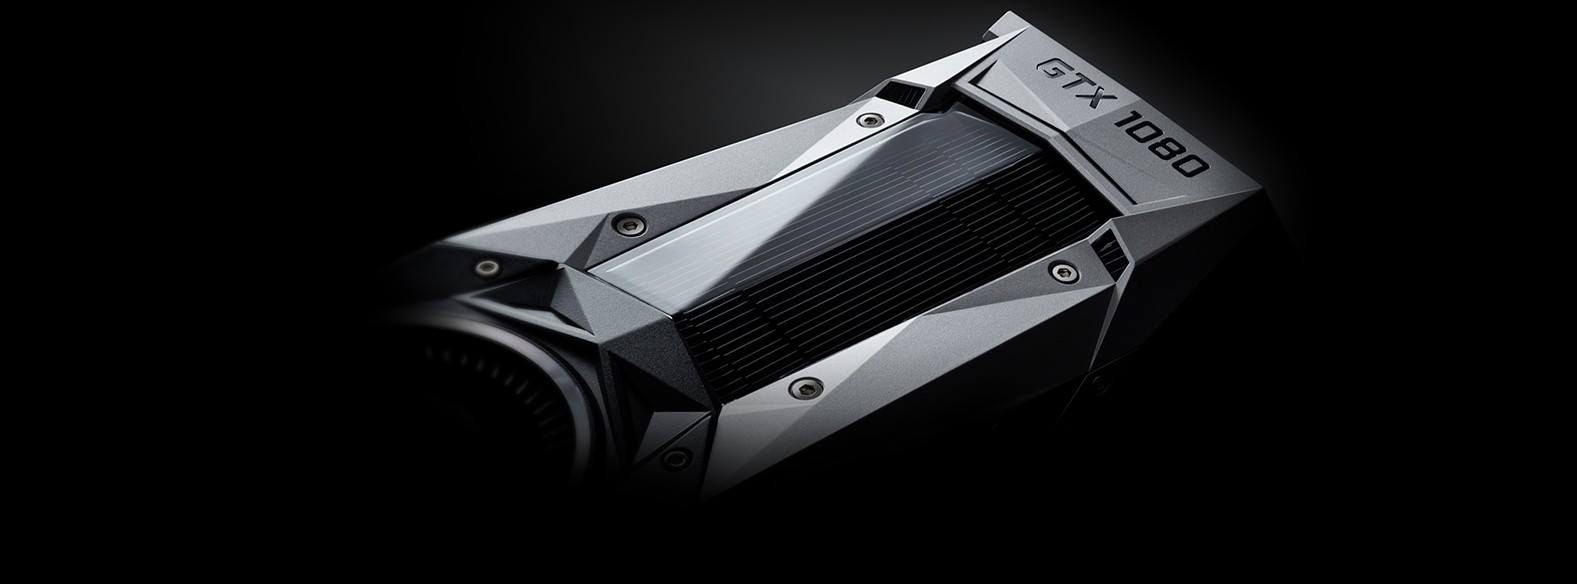 NVIDIA-GeForce-GTX-1080 official 06